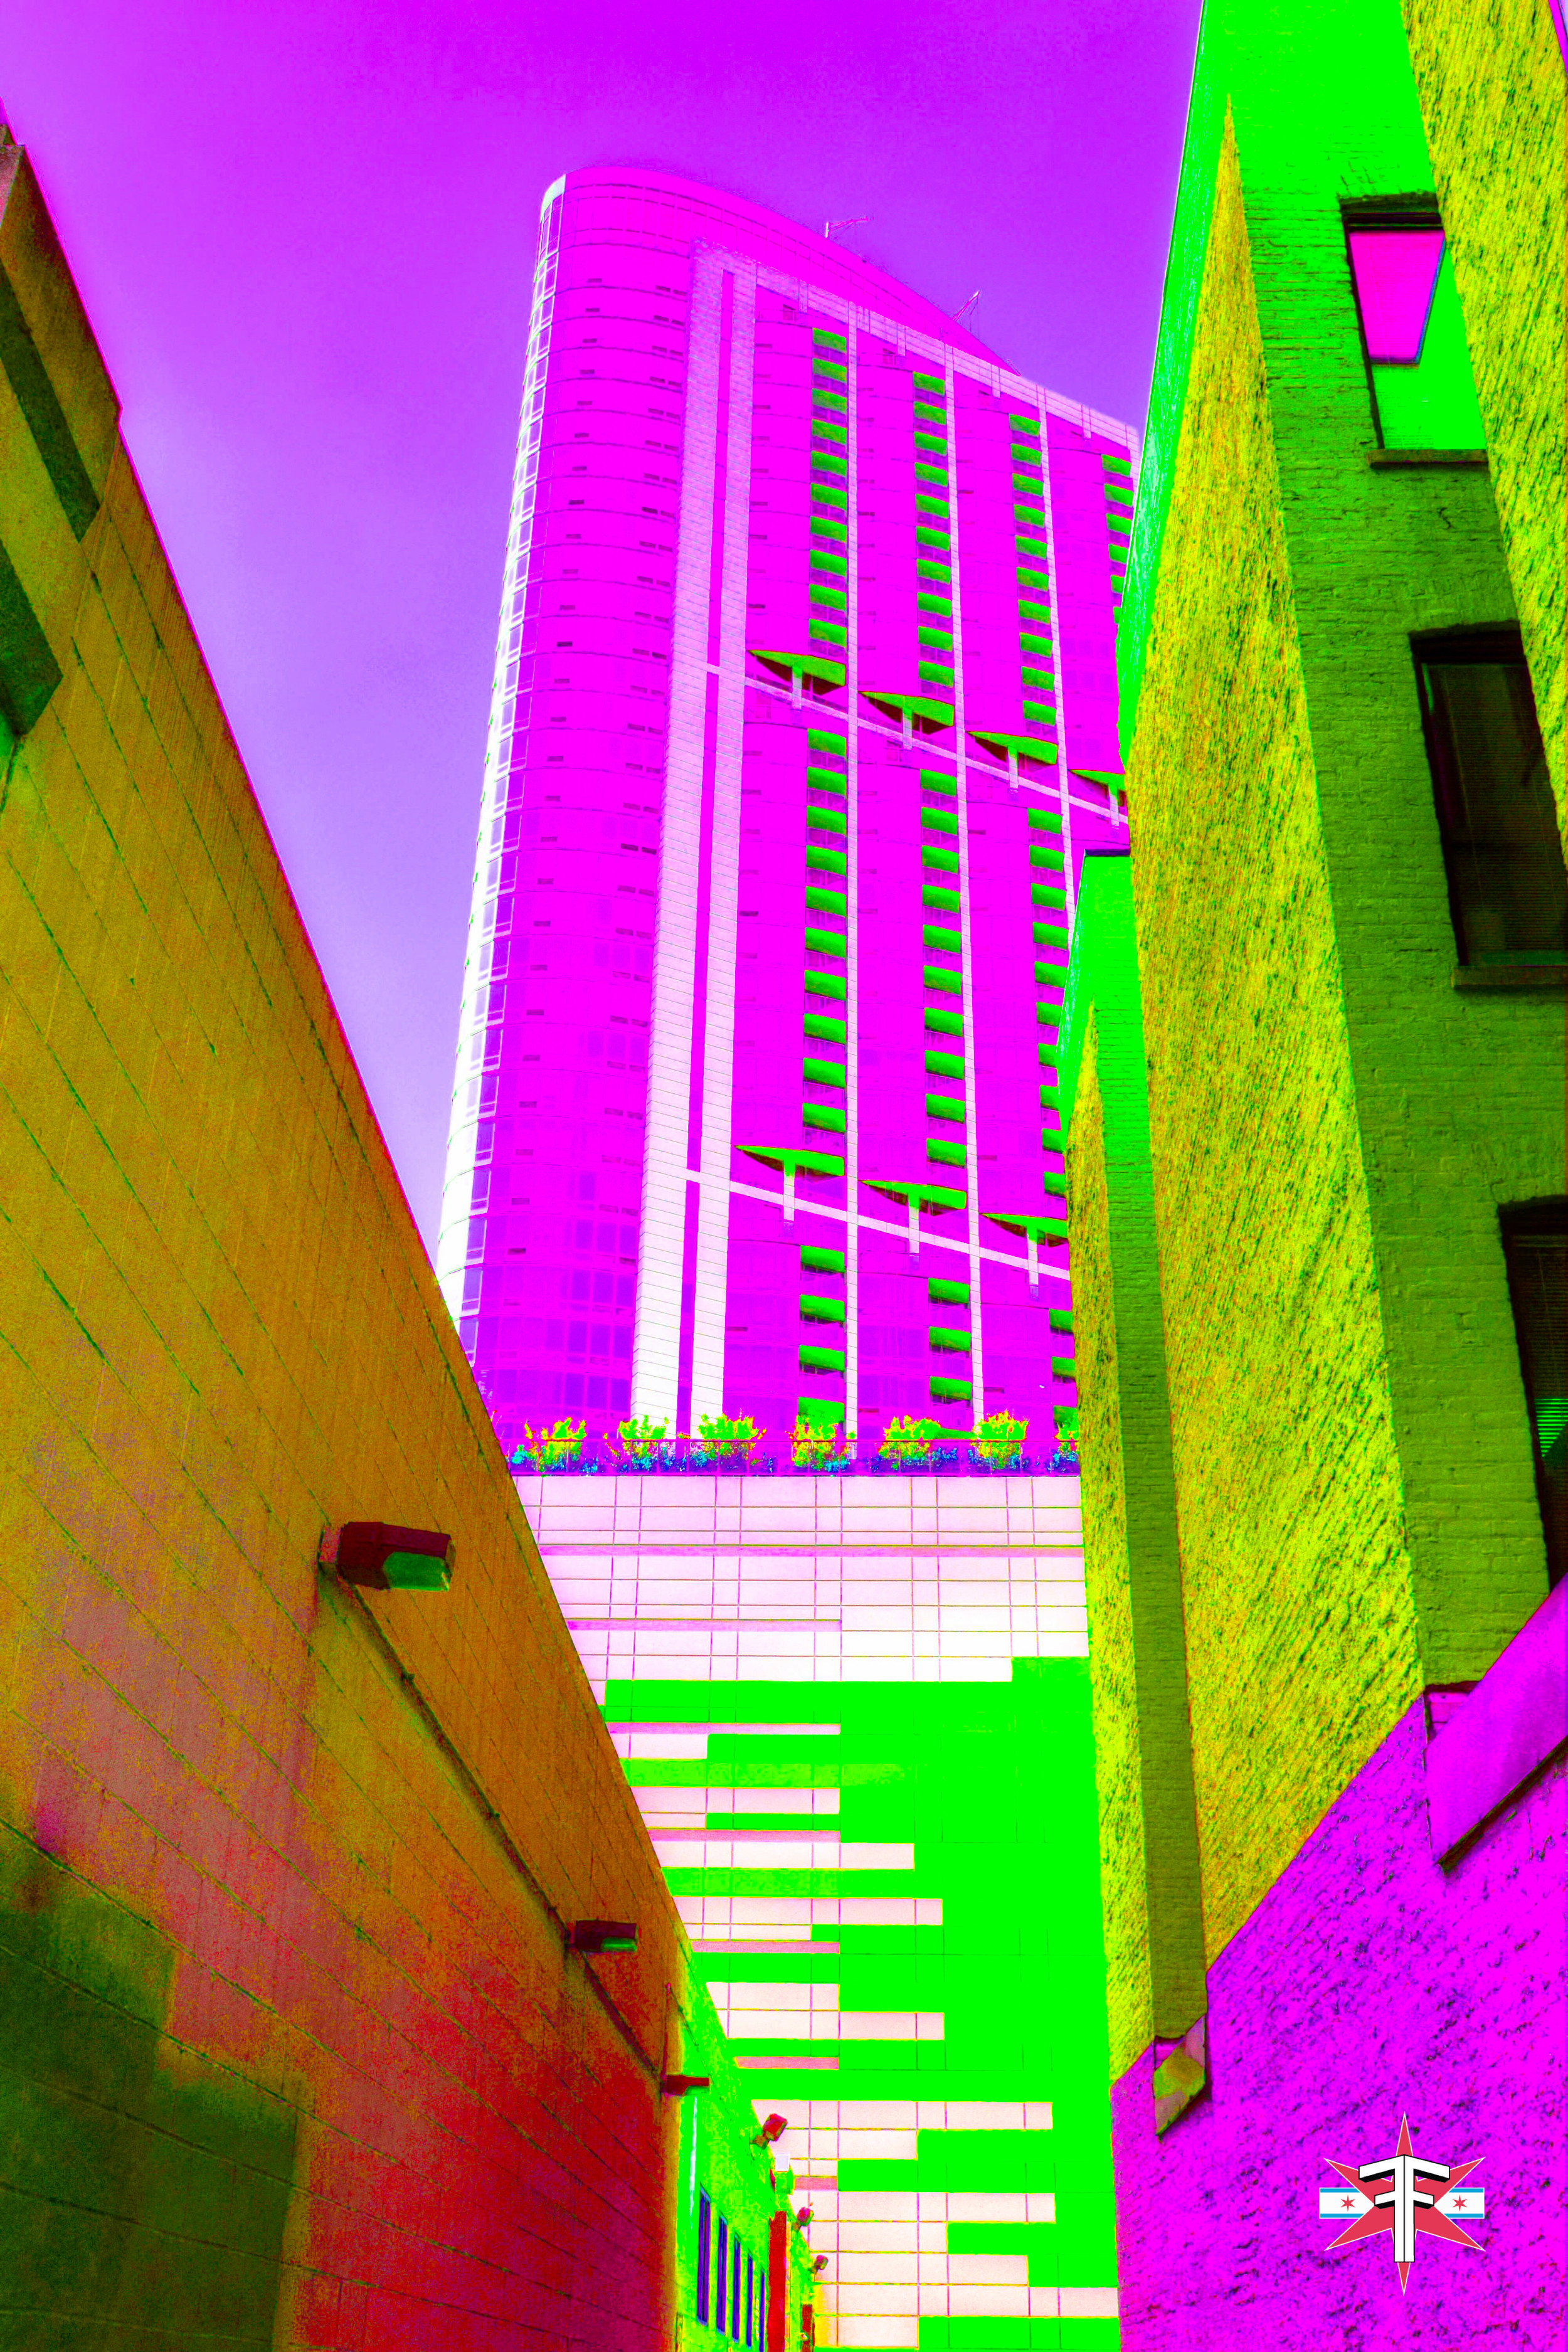 chicago art abstract eric formato photography color travel cityscape architecture saturated citycapes bright vibrant artistic-57-2.jpg